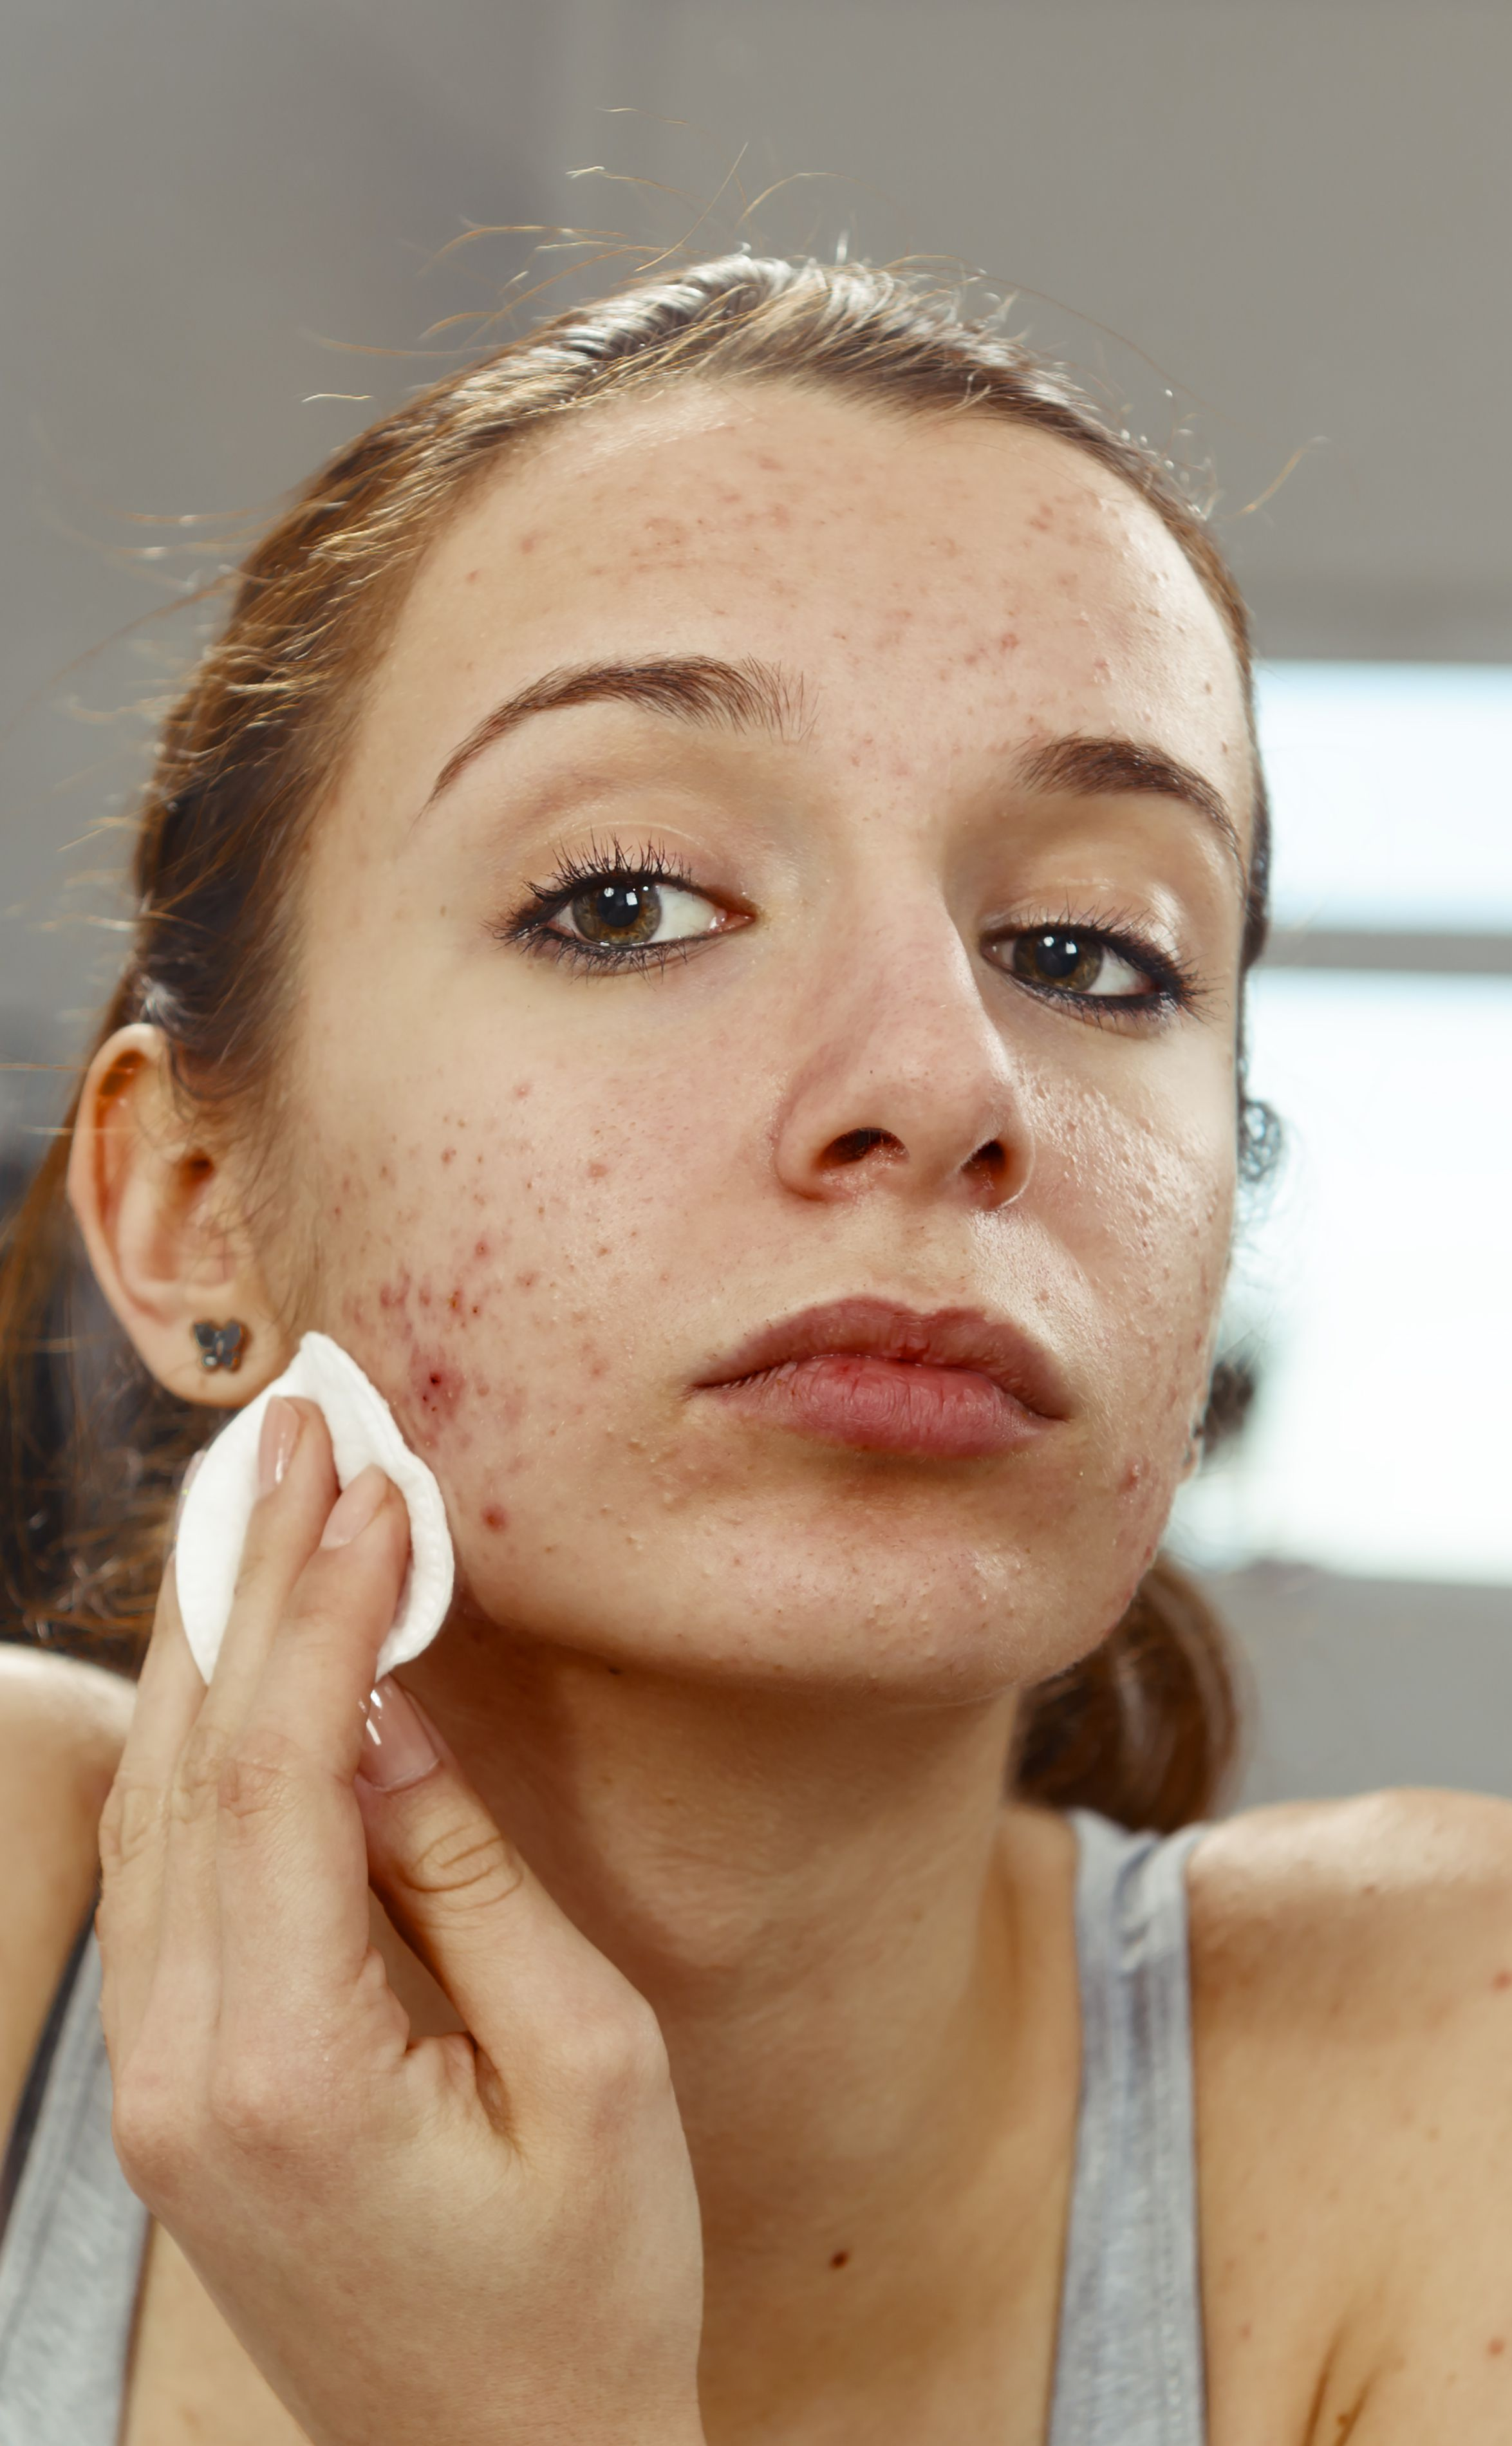 Pimples Come Back After Ending Acne Treatment